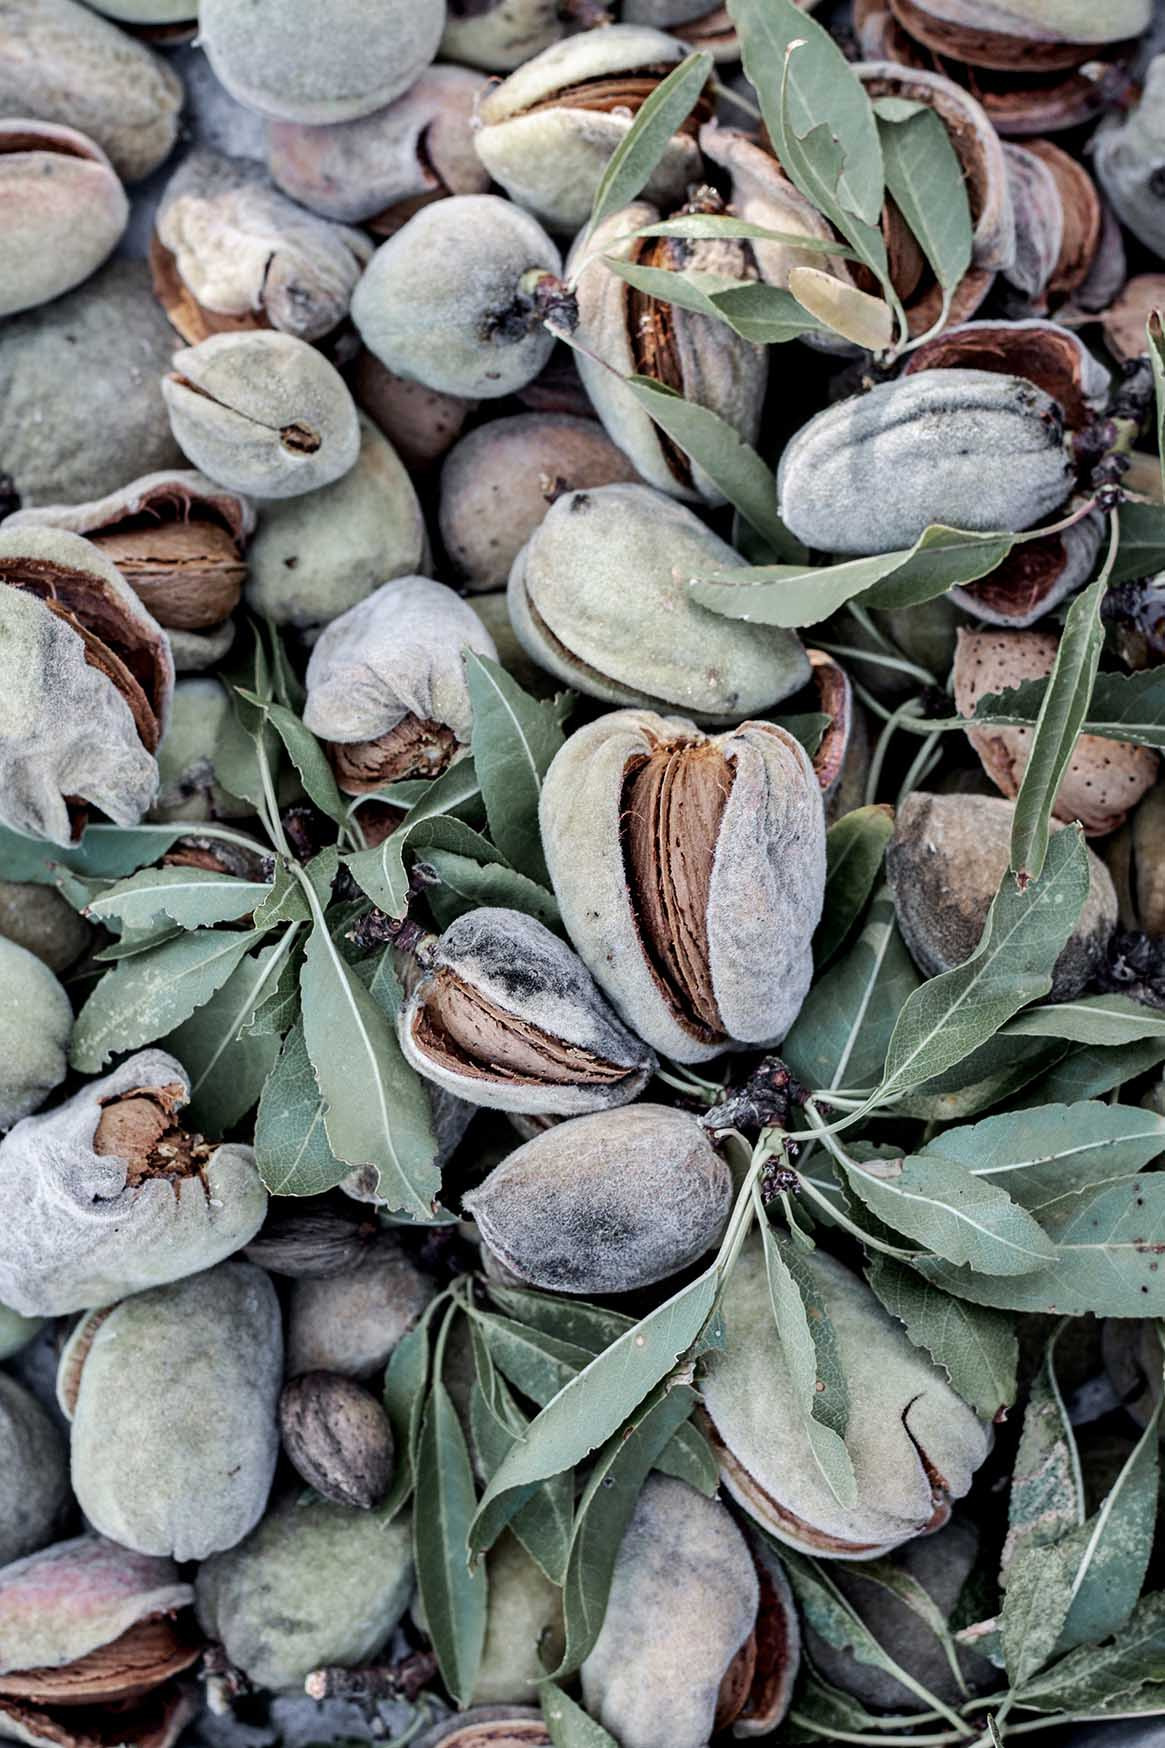 Alexandra Mitsiou, phoode, almond blossom, almond fruit, almond prep, almond harvesting, almond tree, almond photography, almond texture, almond taste, almond shape, almond leaves, almond ripening, almond ripened, almond growing, almond grove, greek almonds, almond recipe, almond dish, food blogger, almond story, almond in the kitchen, culinary properties of almond, almond farm, almond orchard, cosmetic properties of almond